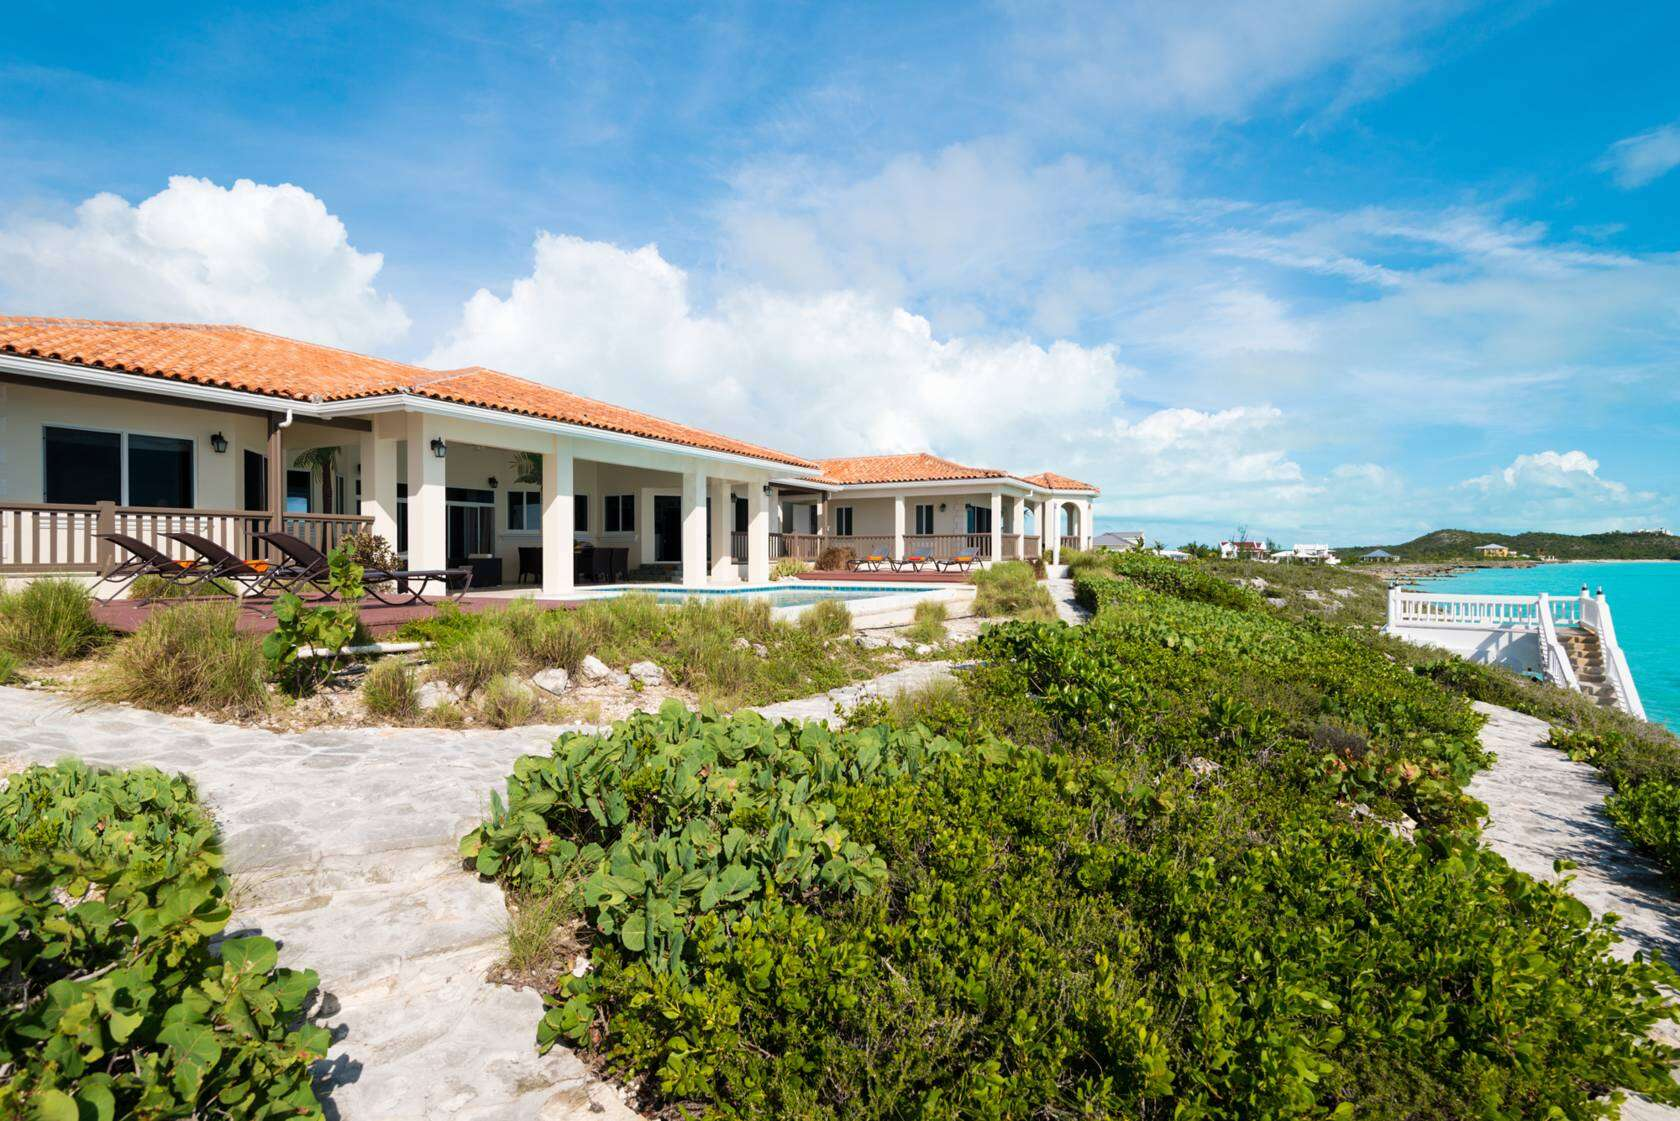 Luxury villa rentals caribbean - Turks and caicos - Providenciales - Turtle tail - Ocean Palms - Image 1/11